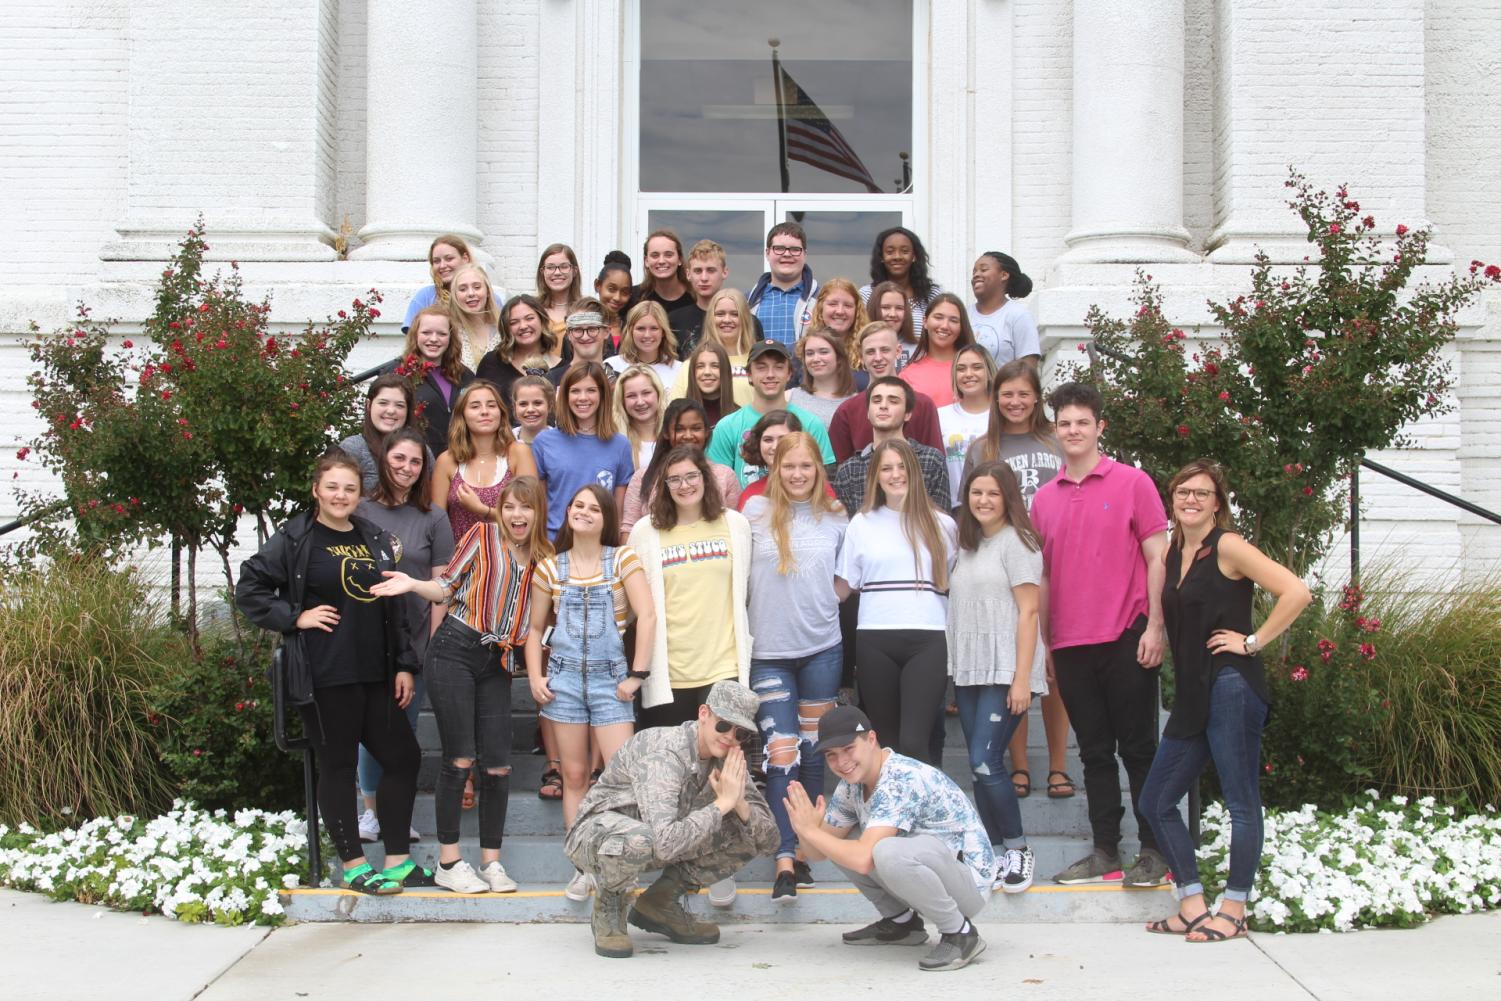 The yearbook staff poses for a group photo at RSU.